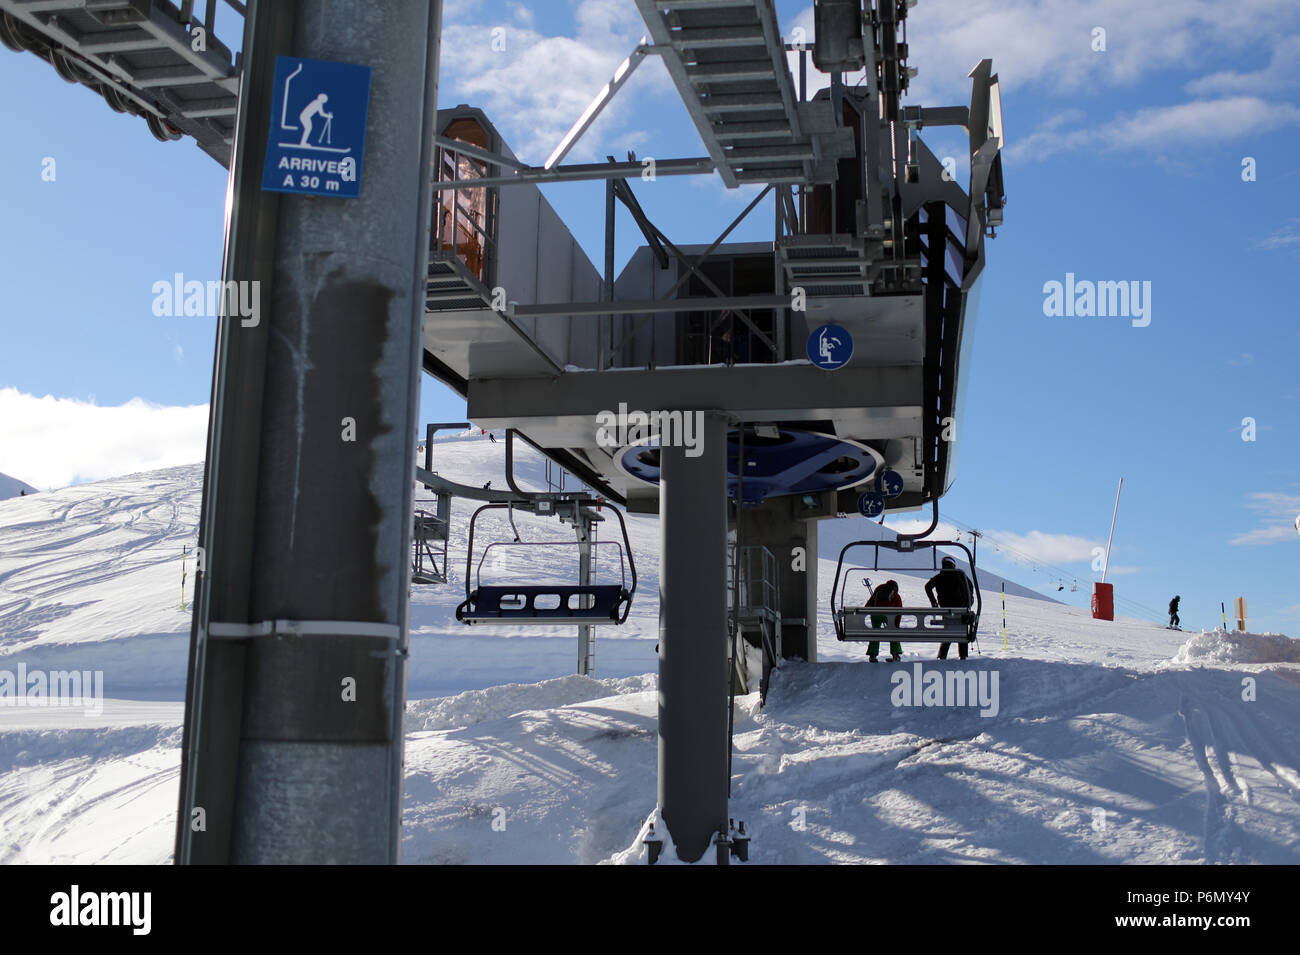 French Alps. Mont-Blanc massif. Ski slope and  chairlifts.  Saint-Gervais. France. Stock Photo